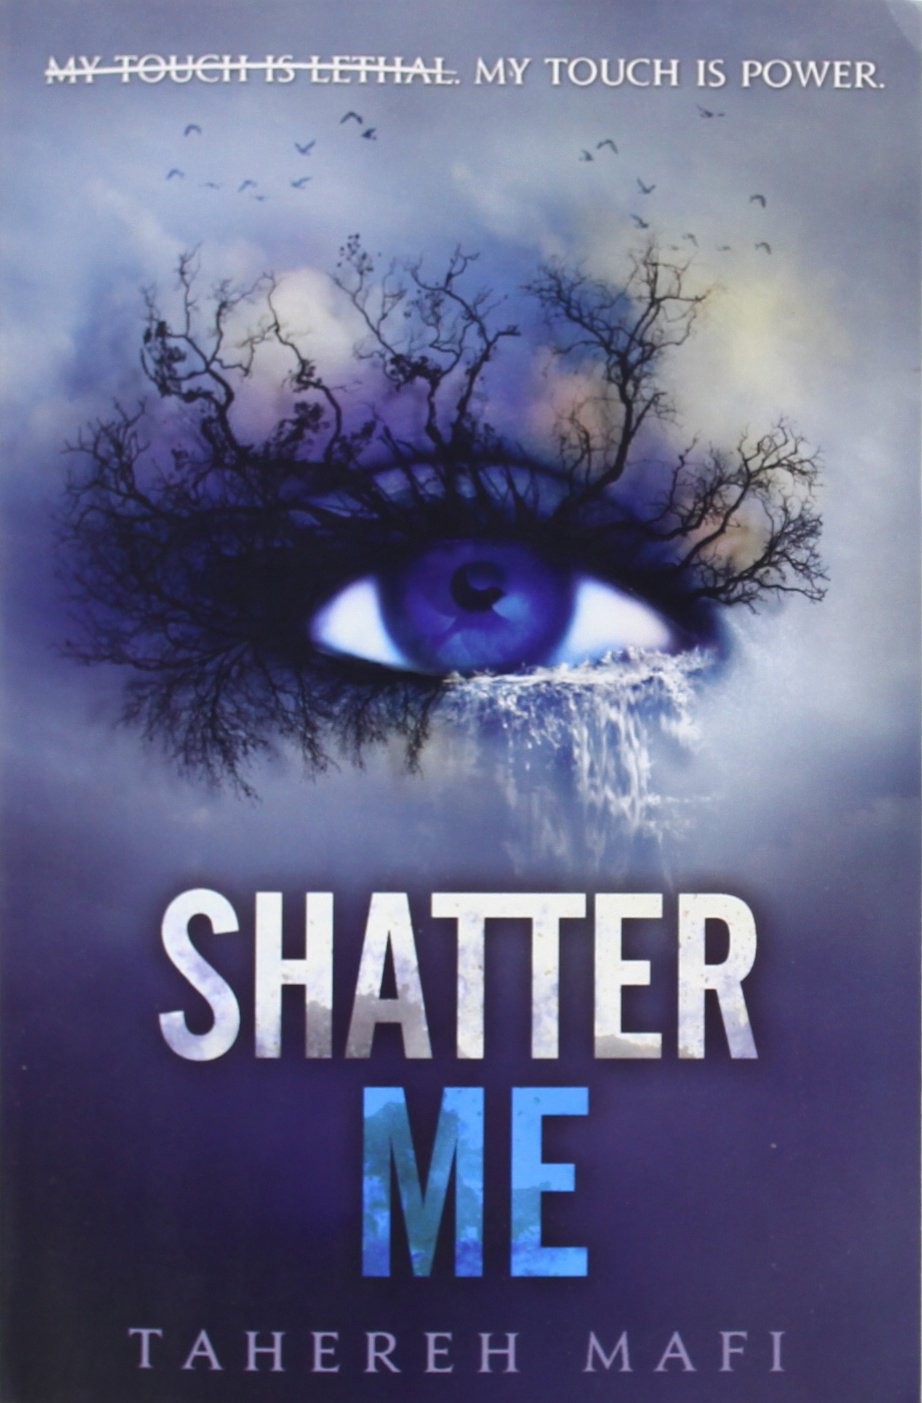 http://www.amazon.it/Shatter-Me-Tahereh-Mafi/dp/0062085506/ref=tmm_pap_title_0?ie=UTF8&qid=1418301098&sr=1-3